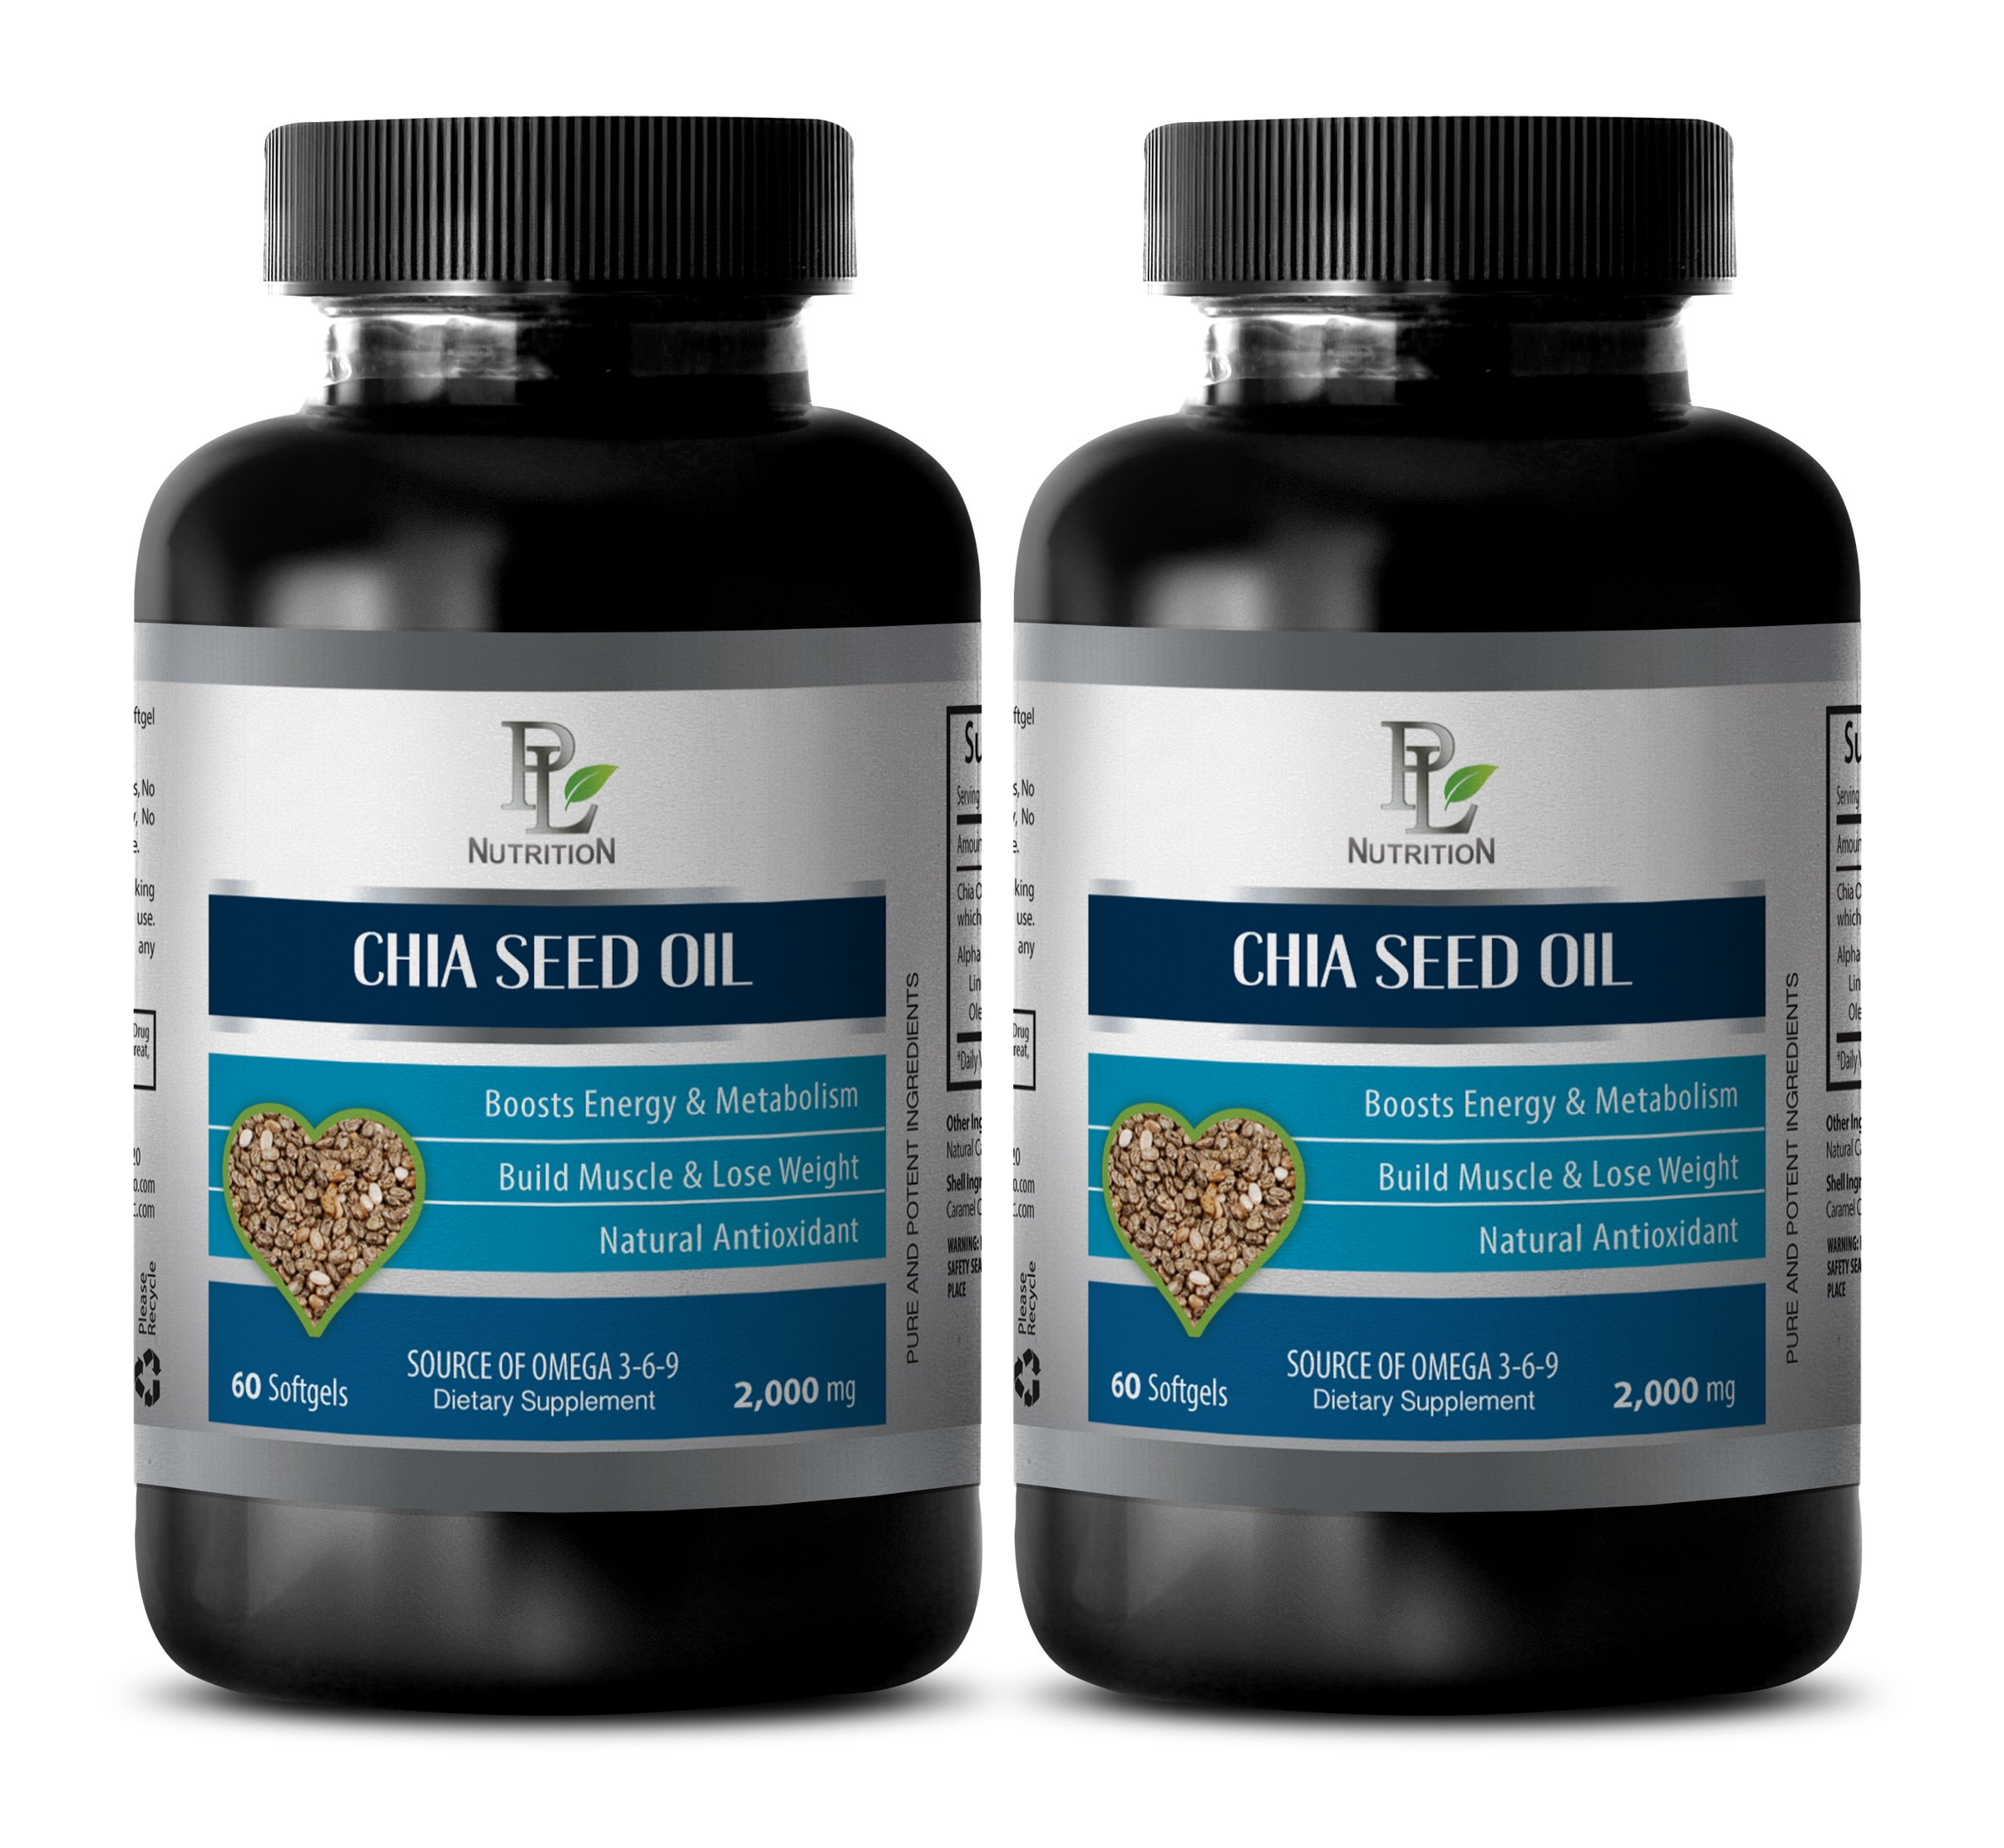 Brain Booster Pills - Chia Seed Oil 2000MG - Source of Omega 3-6-9 - Chia Seeds Bulk - 2 Bottles (120 Softgels) by PL NUTRITION